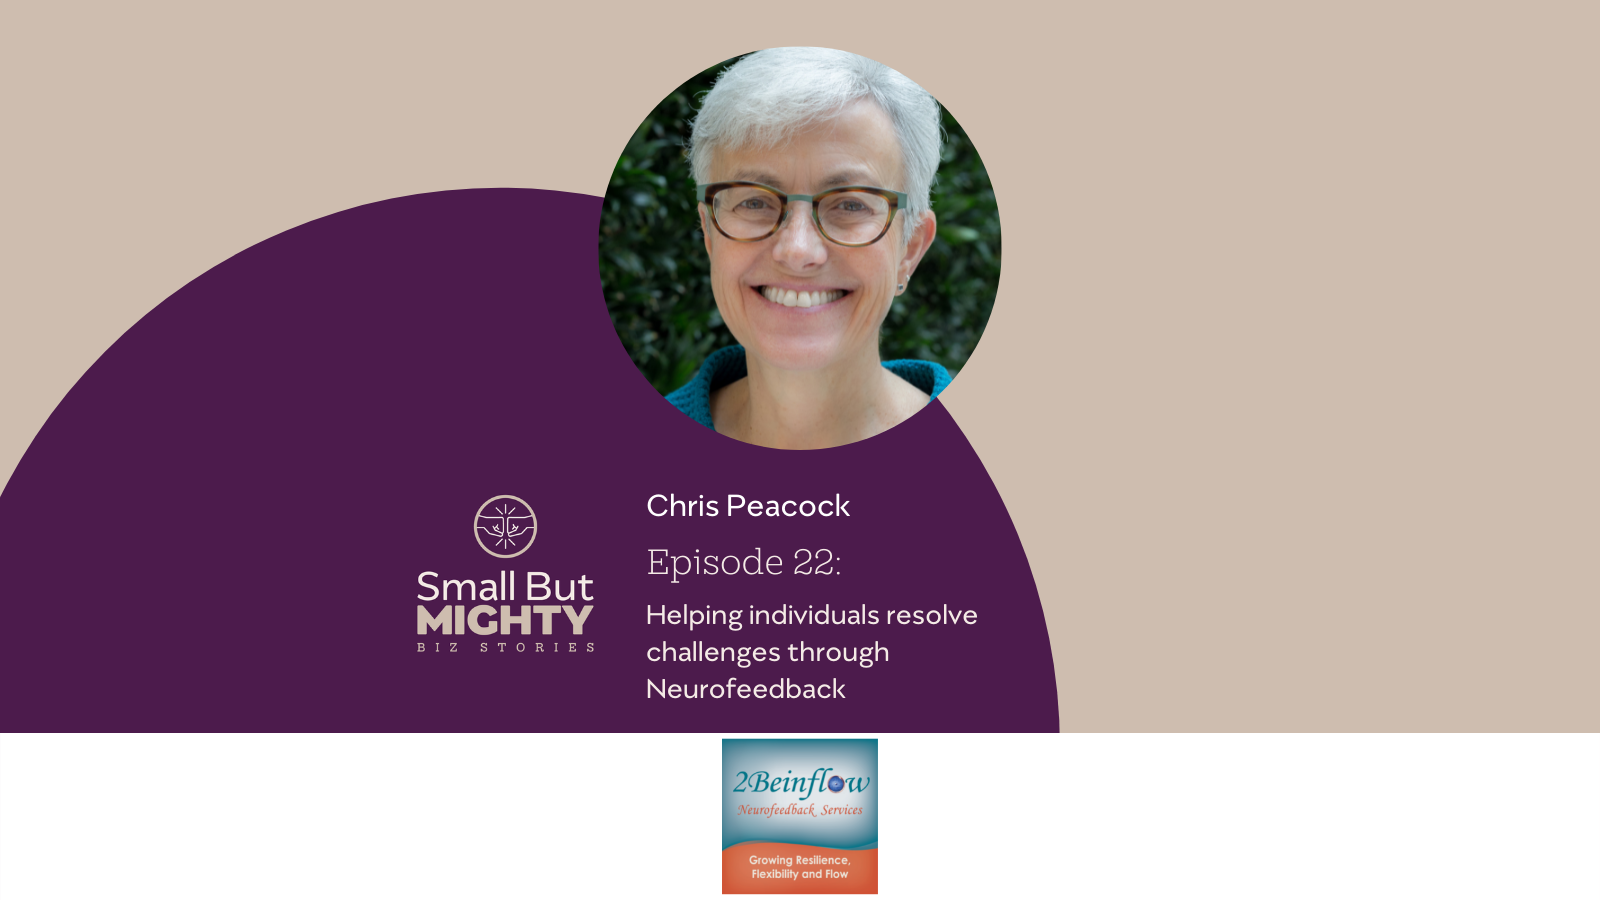 Small but mighty podcast episode 22 Chris Peacock Neurofeedback